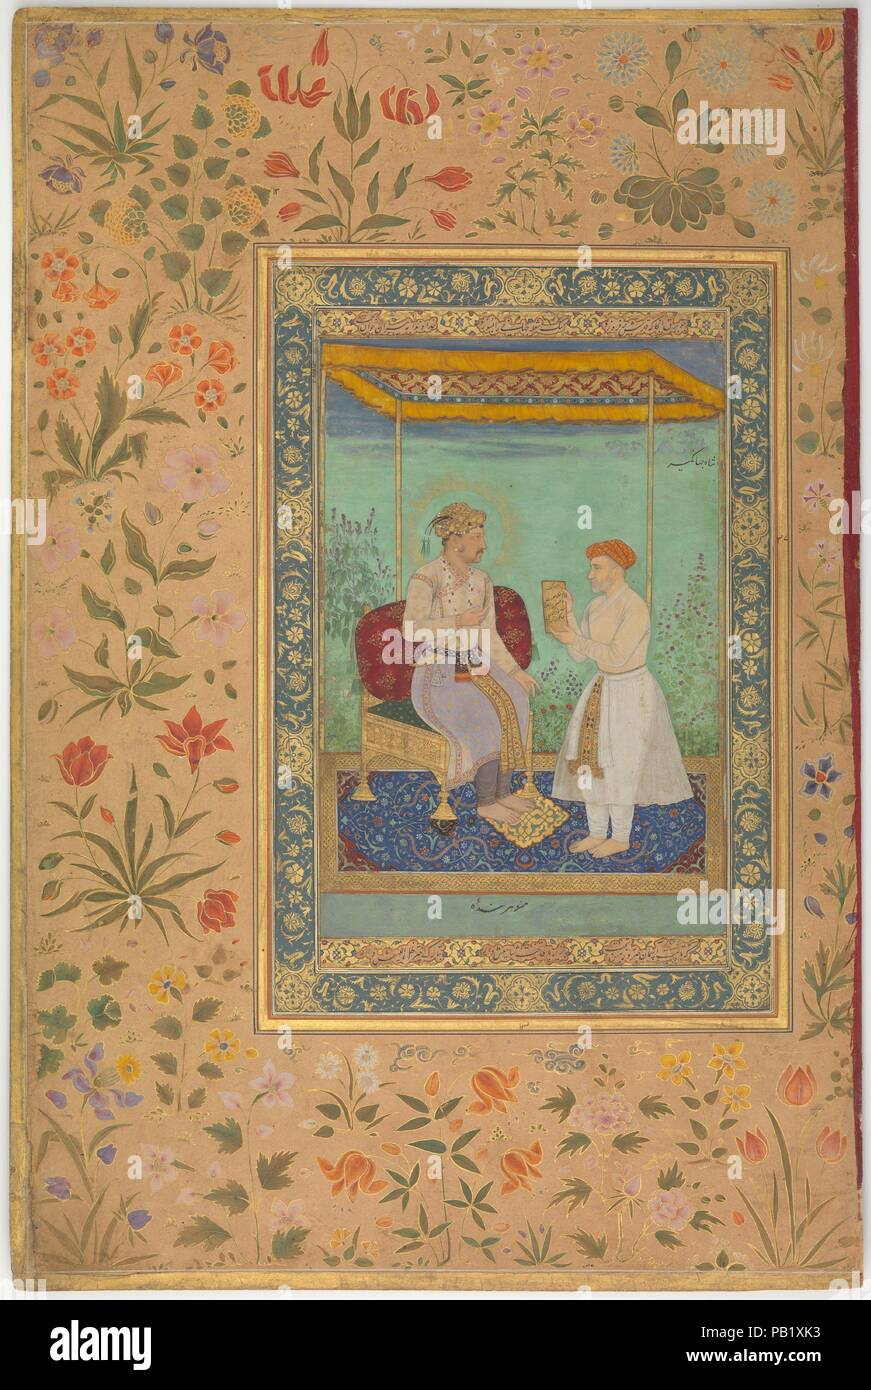 """""""Jahangir and His Vizier, I'timad al-Daula"""", Folio from the Shah Jahan Album. Artist: Manohar (active ca. 1582-1624). Calligrapher: Mir 'Ali Haravi (d. ca. 1550). Dimensions: 15 3/8 x 10 3/16in. (39 x 25.9cm)  Mat: 19 1/4 x 14 1/4 in. (48.9 x 36.2 cm)  Frame: 20 1/4 x 15 1/4 in. (51.4 x 38.7 cm). Date: recto: ca. 1615; verso: ca. 1530-45.  While Jahangir (r. 1605-27) and l'timad al-Daula (a title meaning """"reliance of the state"""") greet each other formally in this painting, they had a warm personal relationship, for in 1611 l'timad al-Daula's daughter had married Jahangir. By virtue of this conn Stock Photo"""